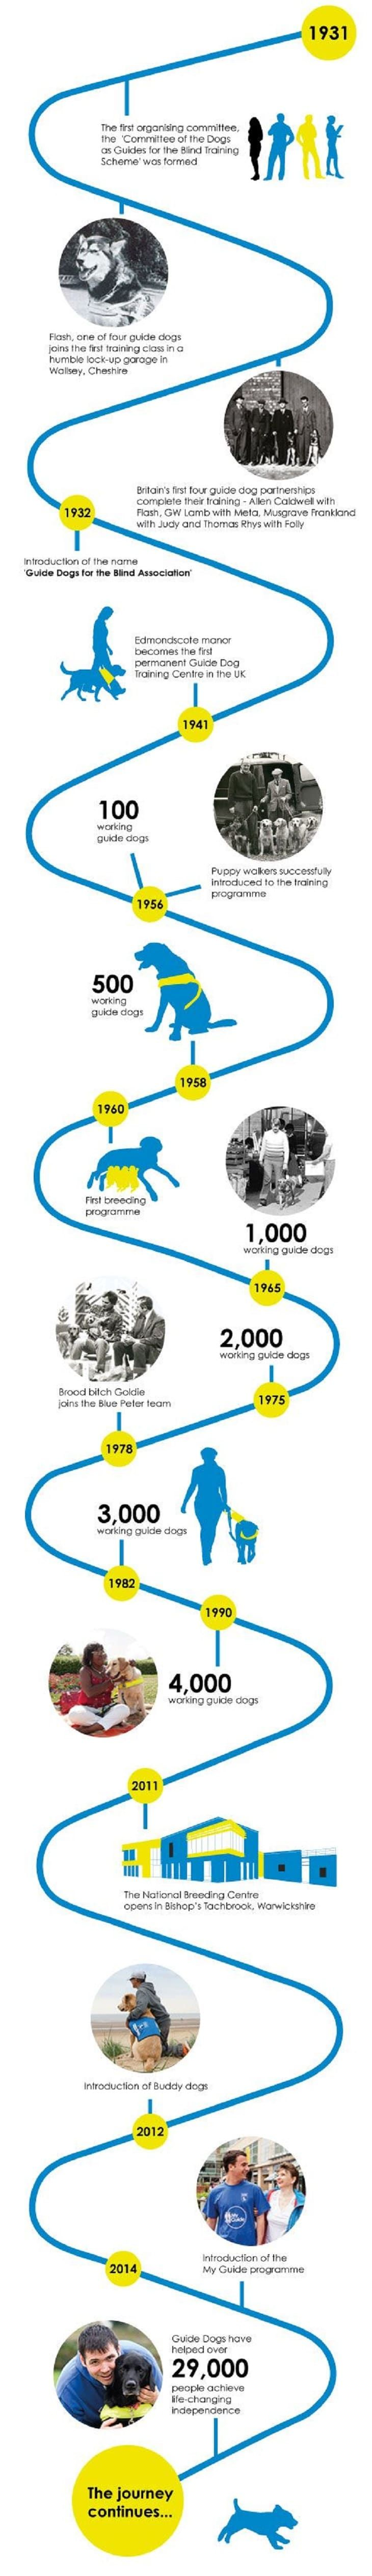 Guide dogs infographic